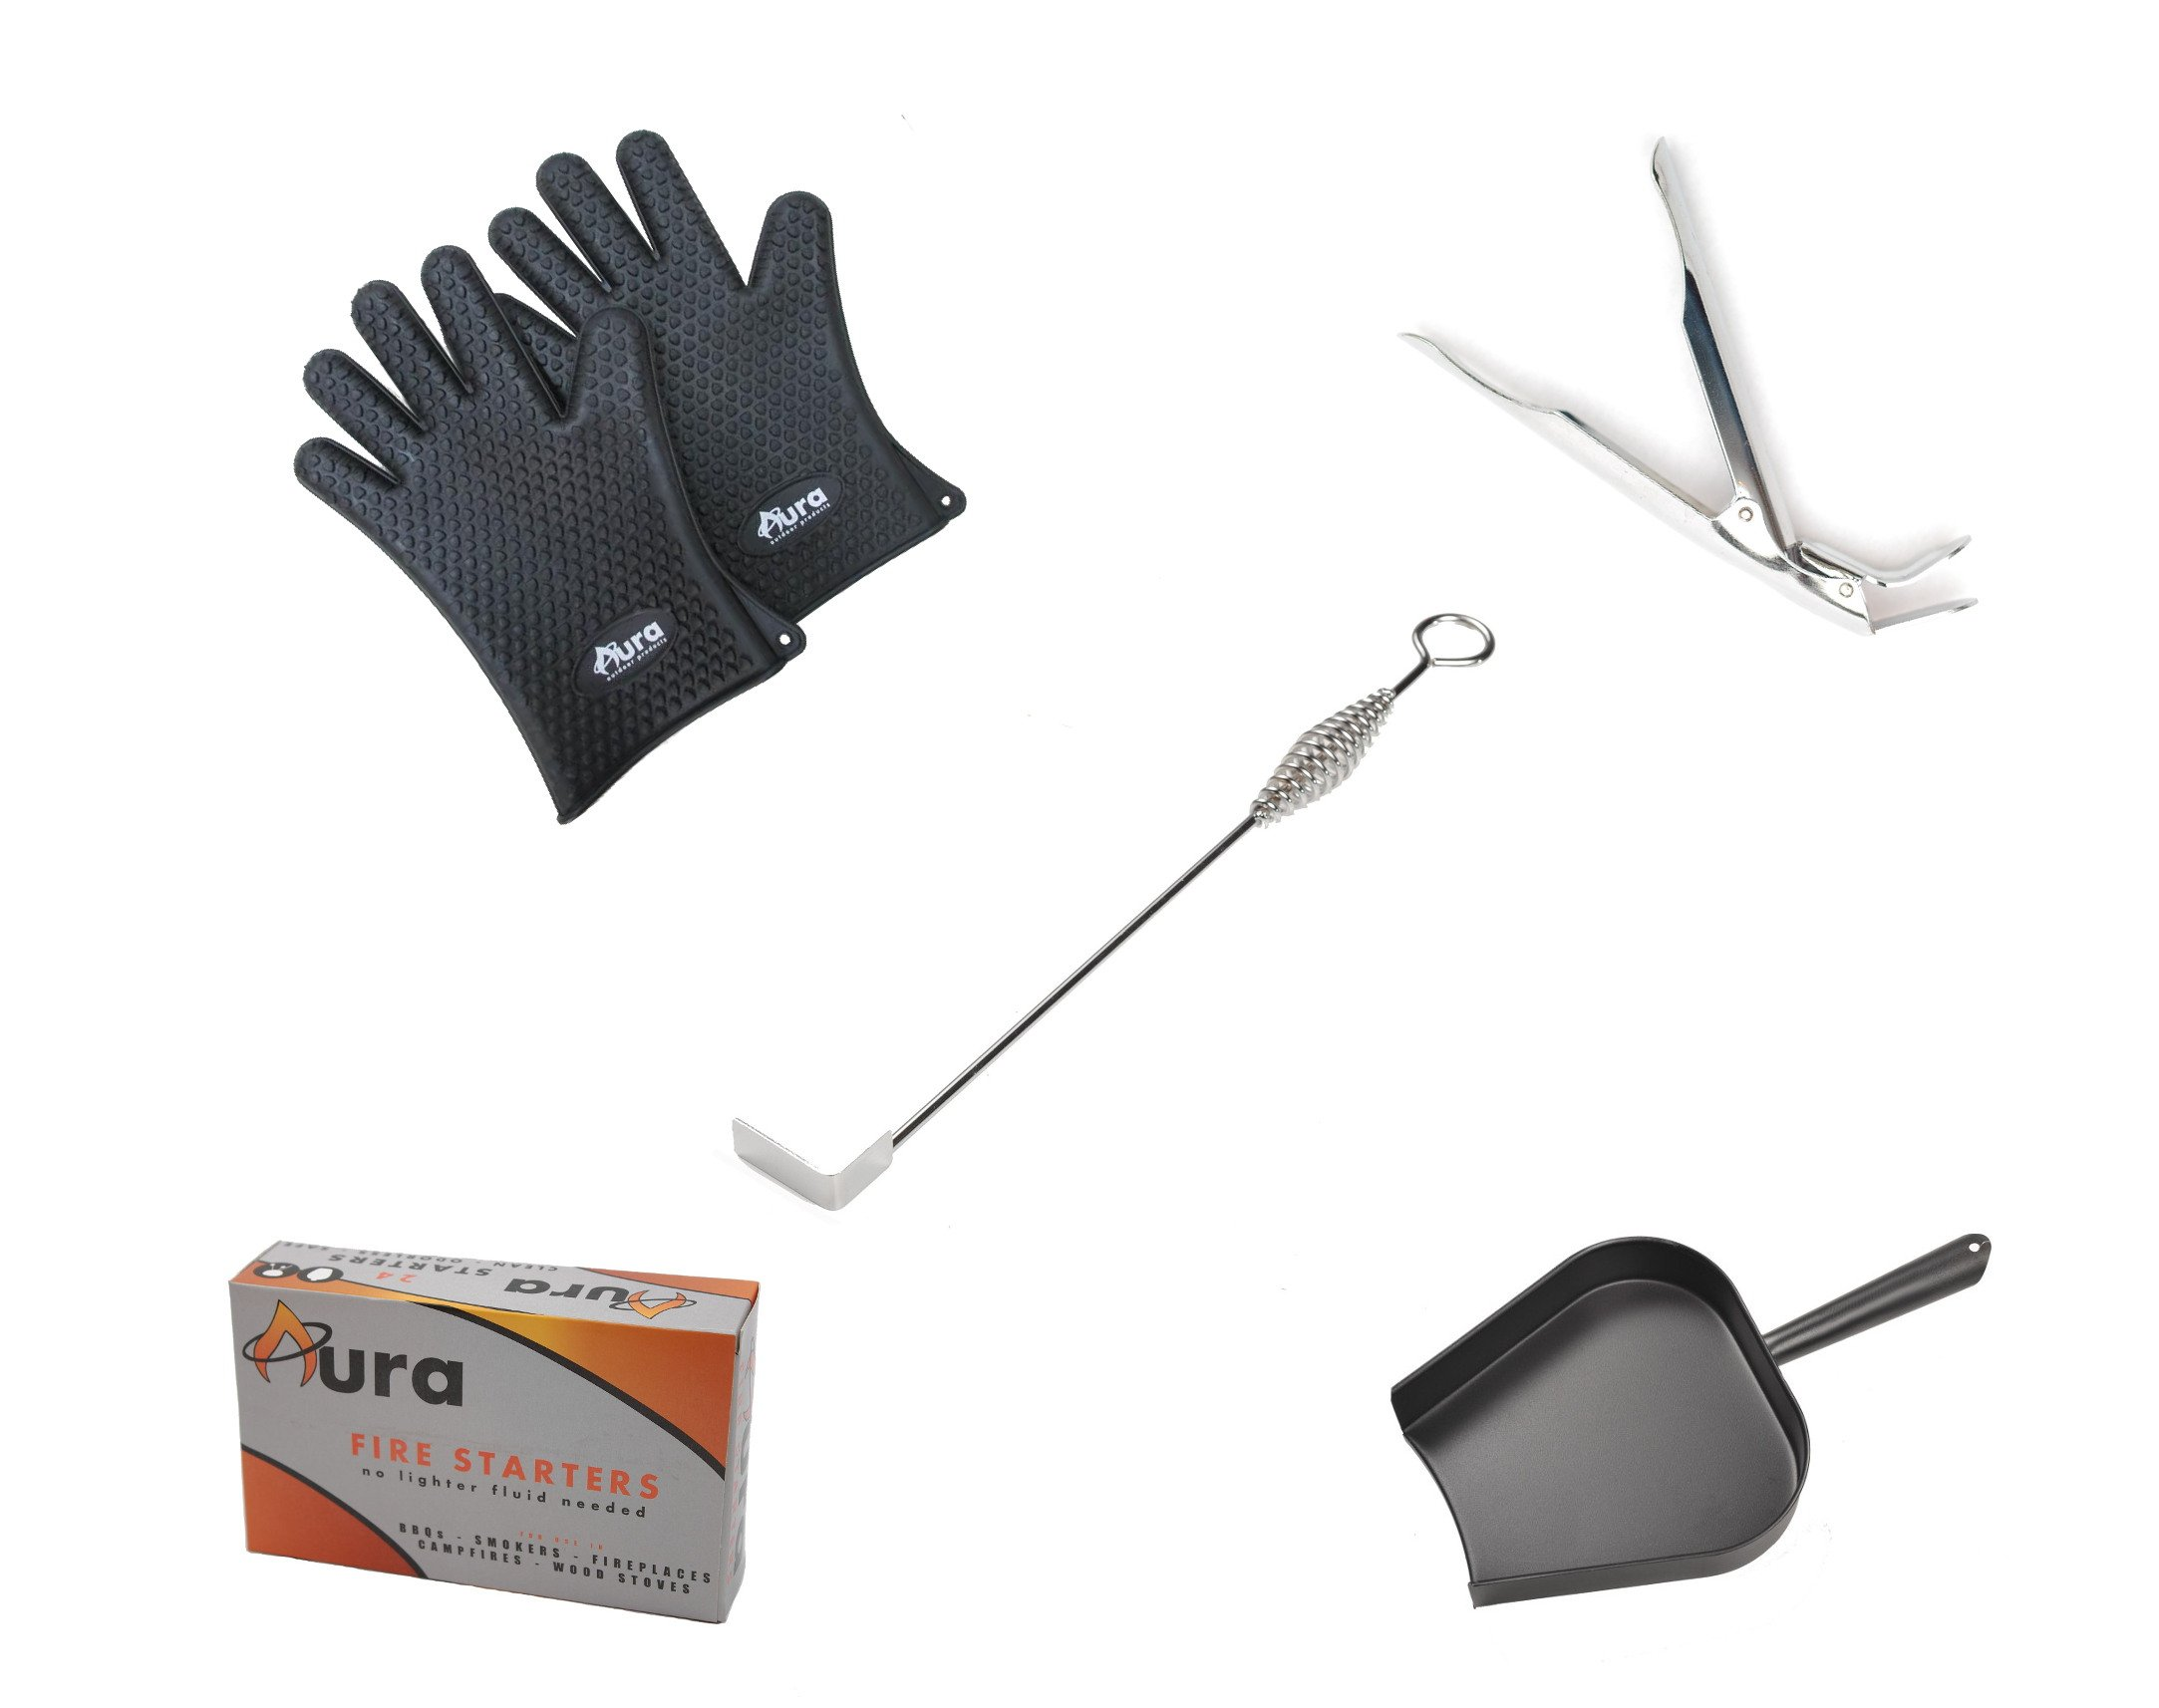 Aura Outdoor Products Kamado Grill Starter Kit with Grill Gripper, Ash Pan and Tool, Fire Starter and Grill Gloves for Big Green Egg, Kamado Joe and More!